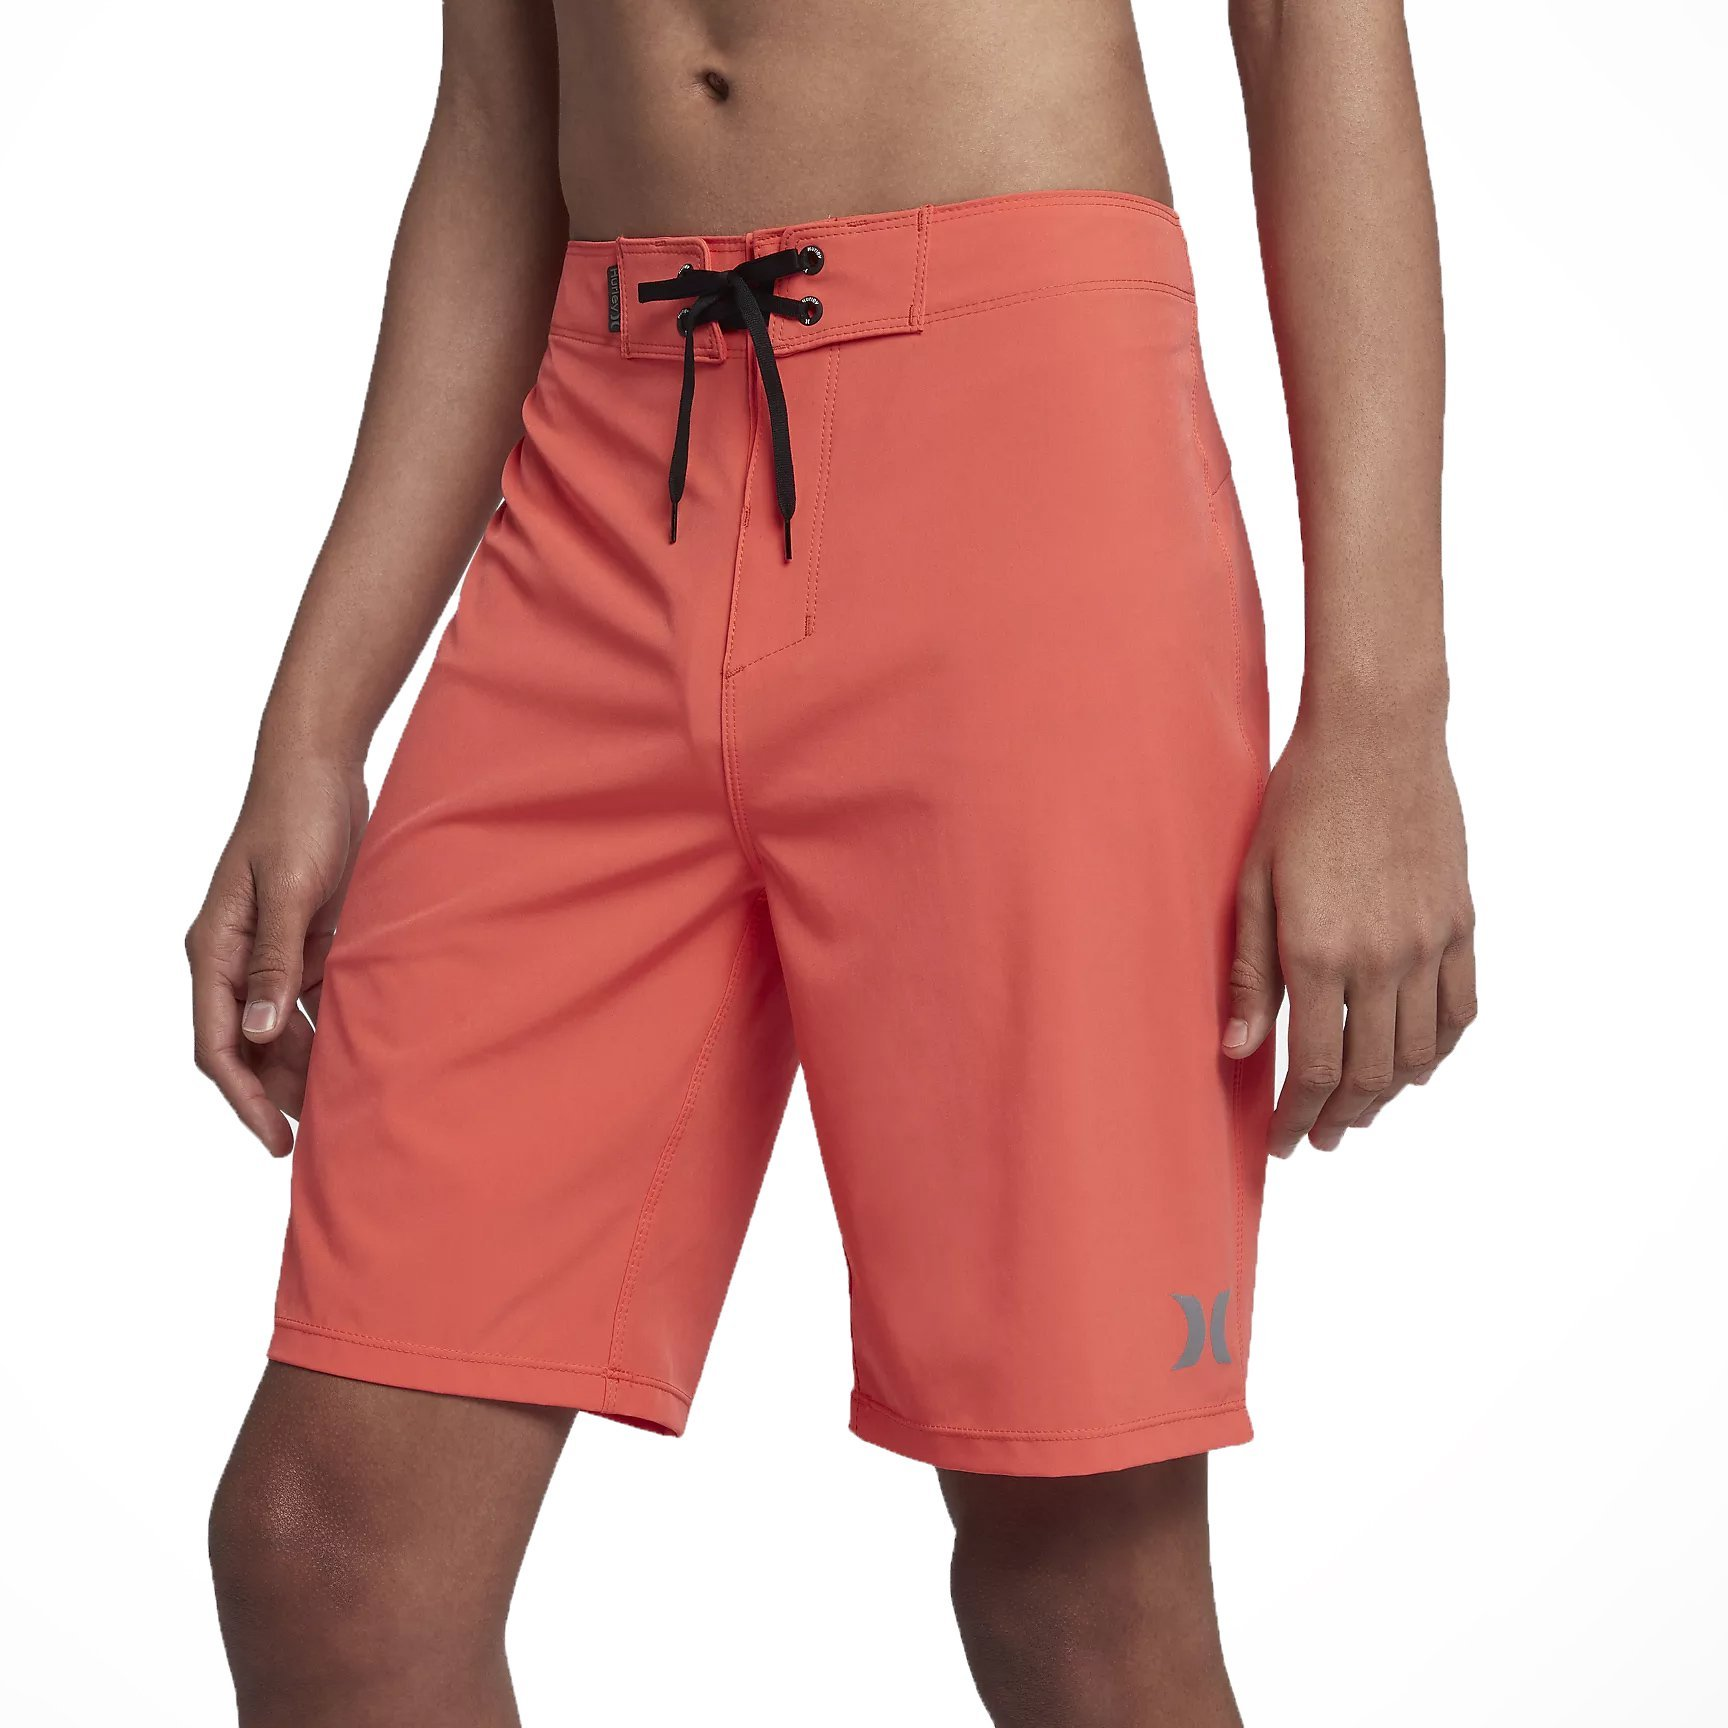 Hurley Men's Phantom One & Only 20'' Stretch Boardshorts Rush Coral 40 by Hurley